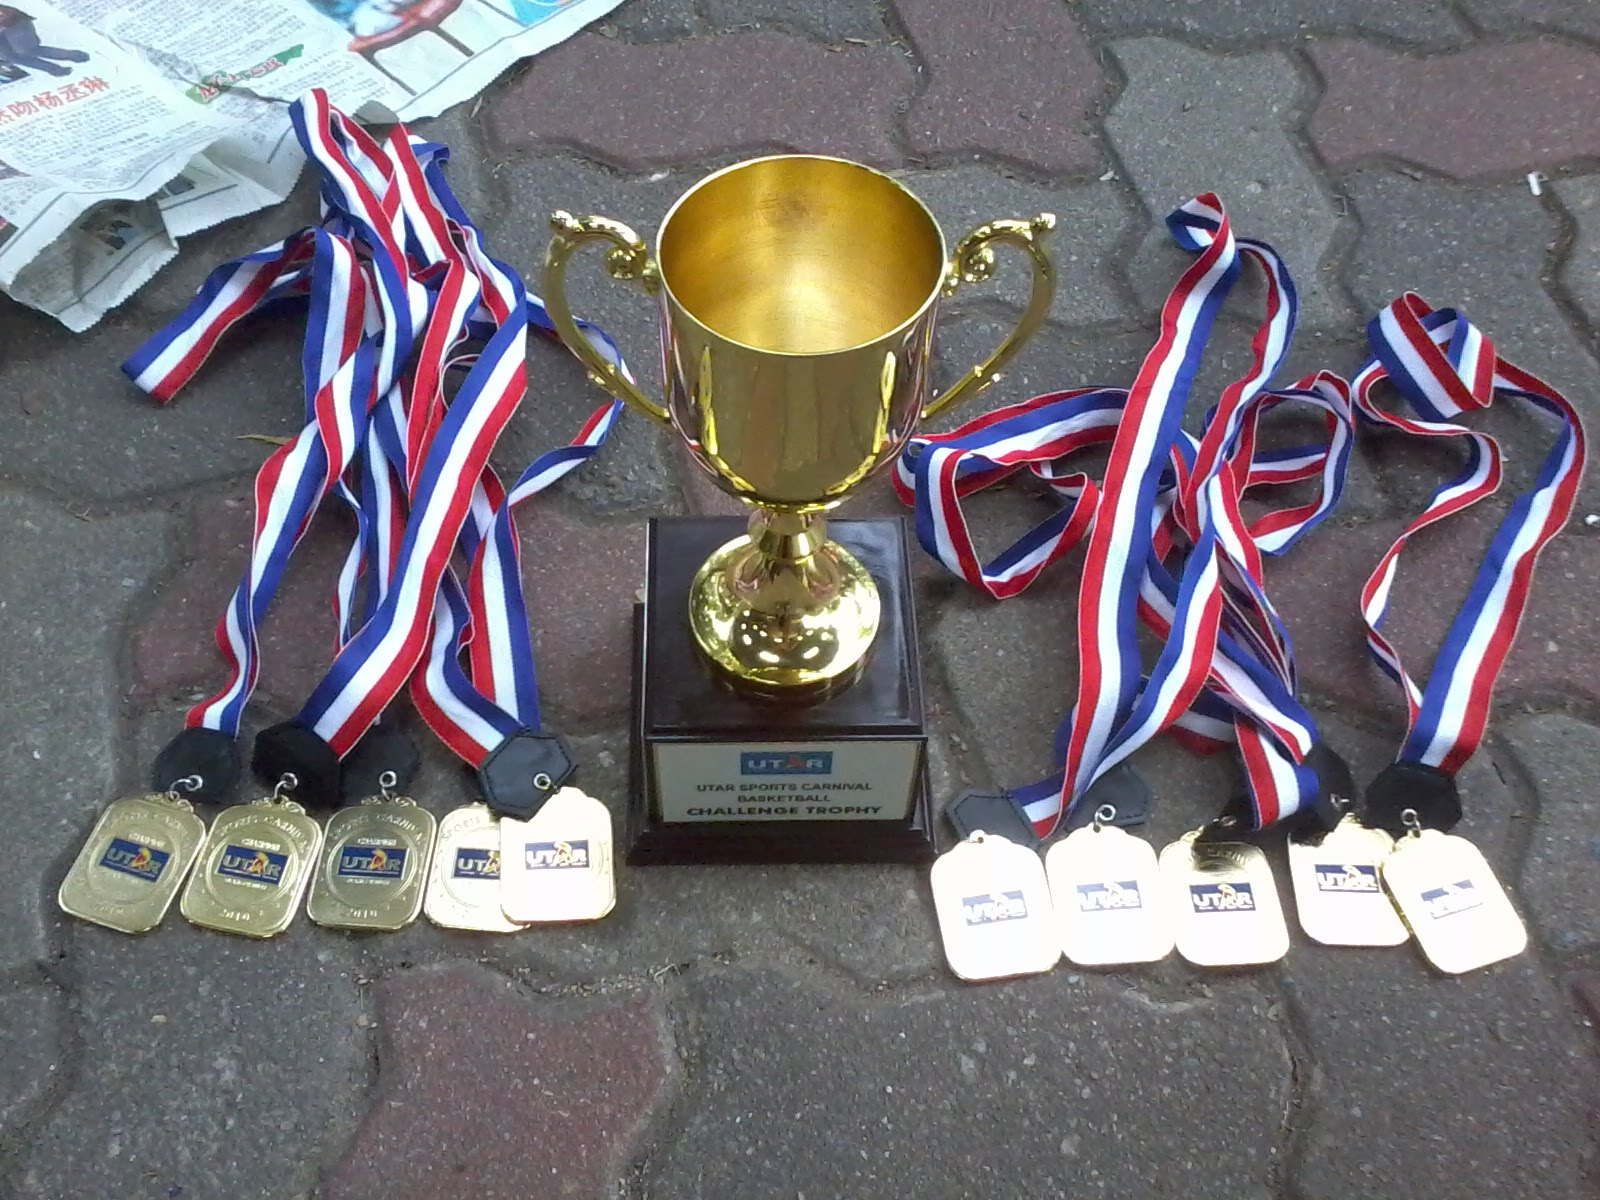 This Is The Basketball Trophy And Gold Medals But Too Bad All My Teammate Leave After Final Because Prize Giving Ceremony Will Start About 2